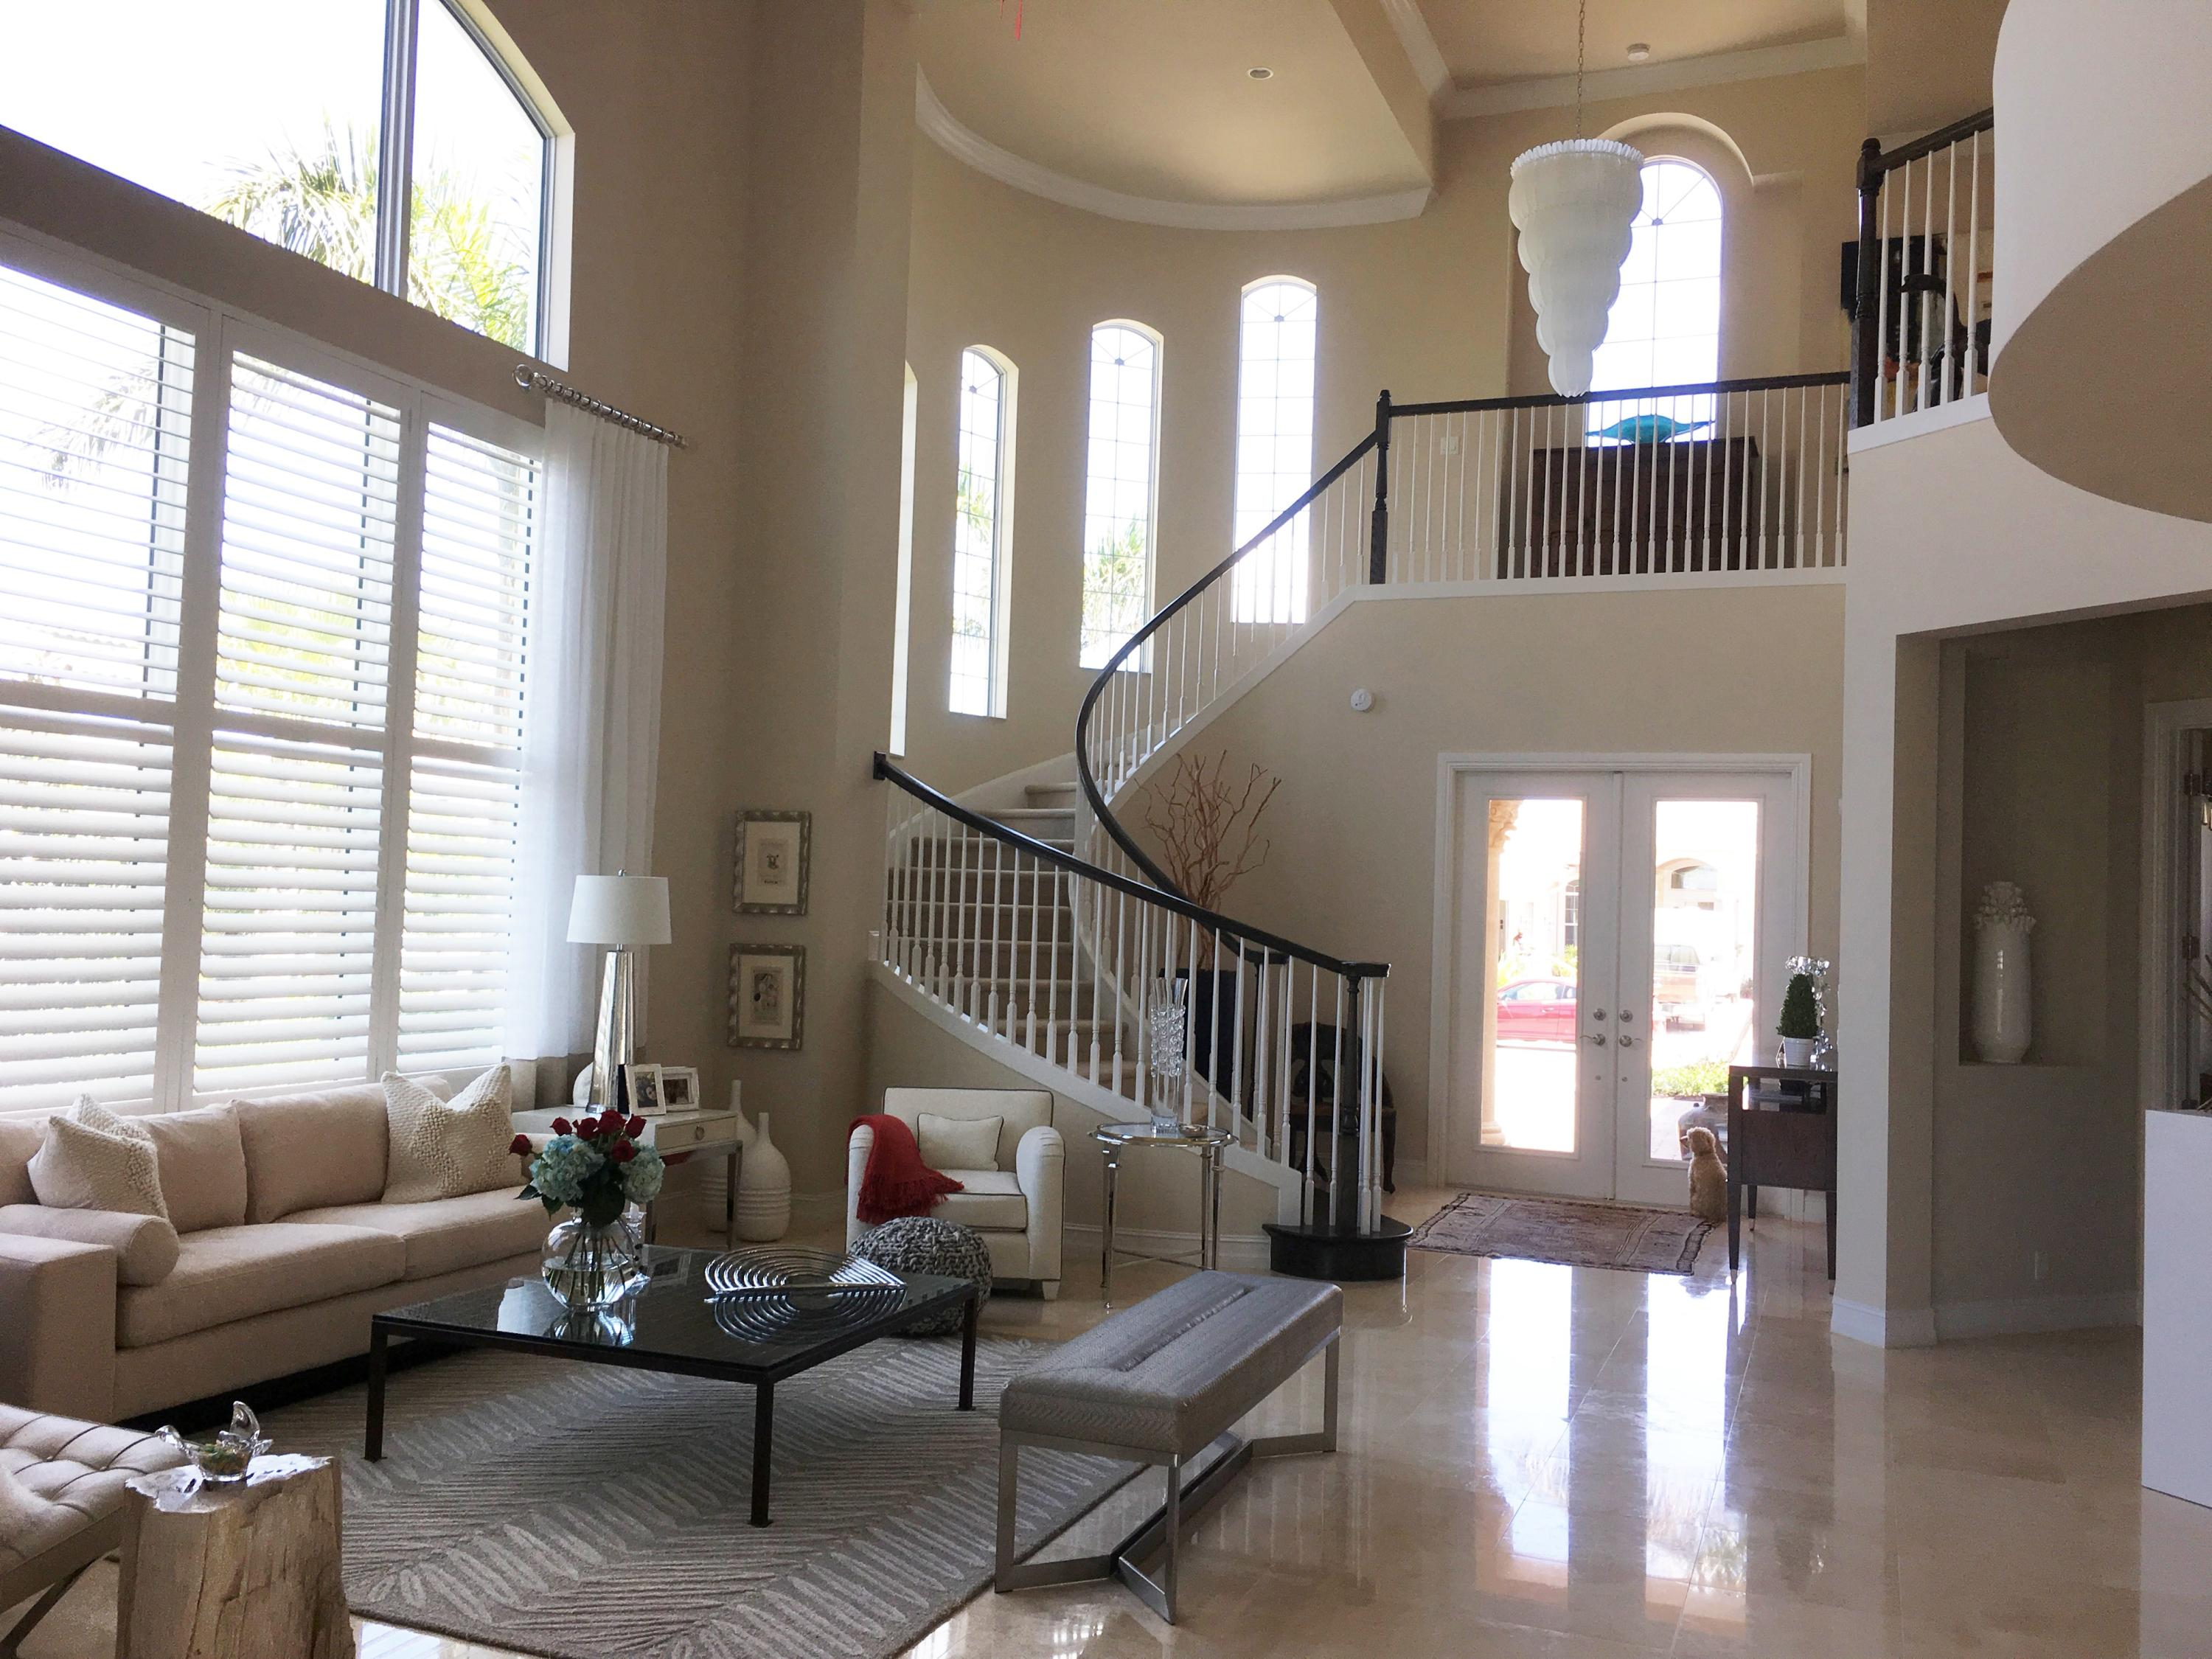 New Home for sale at 145 Sonata Drive in Jupiter